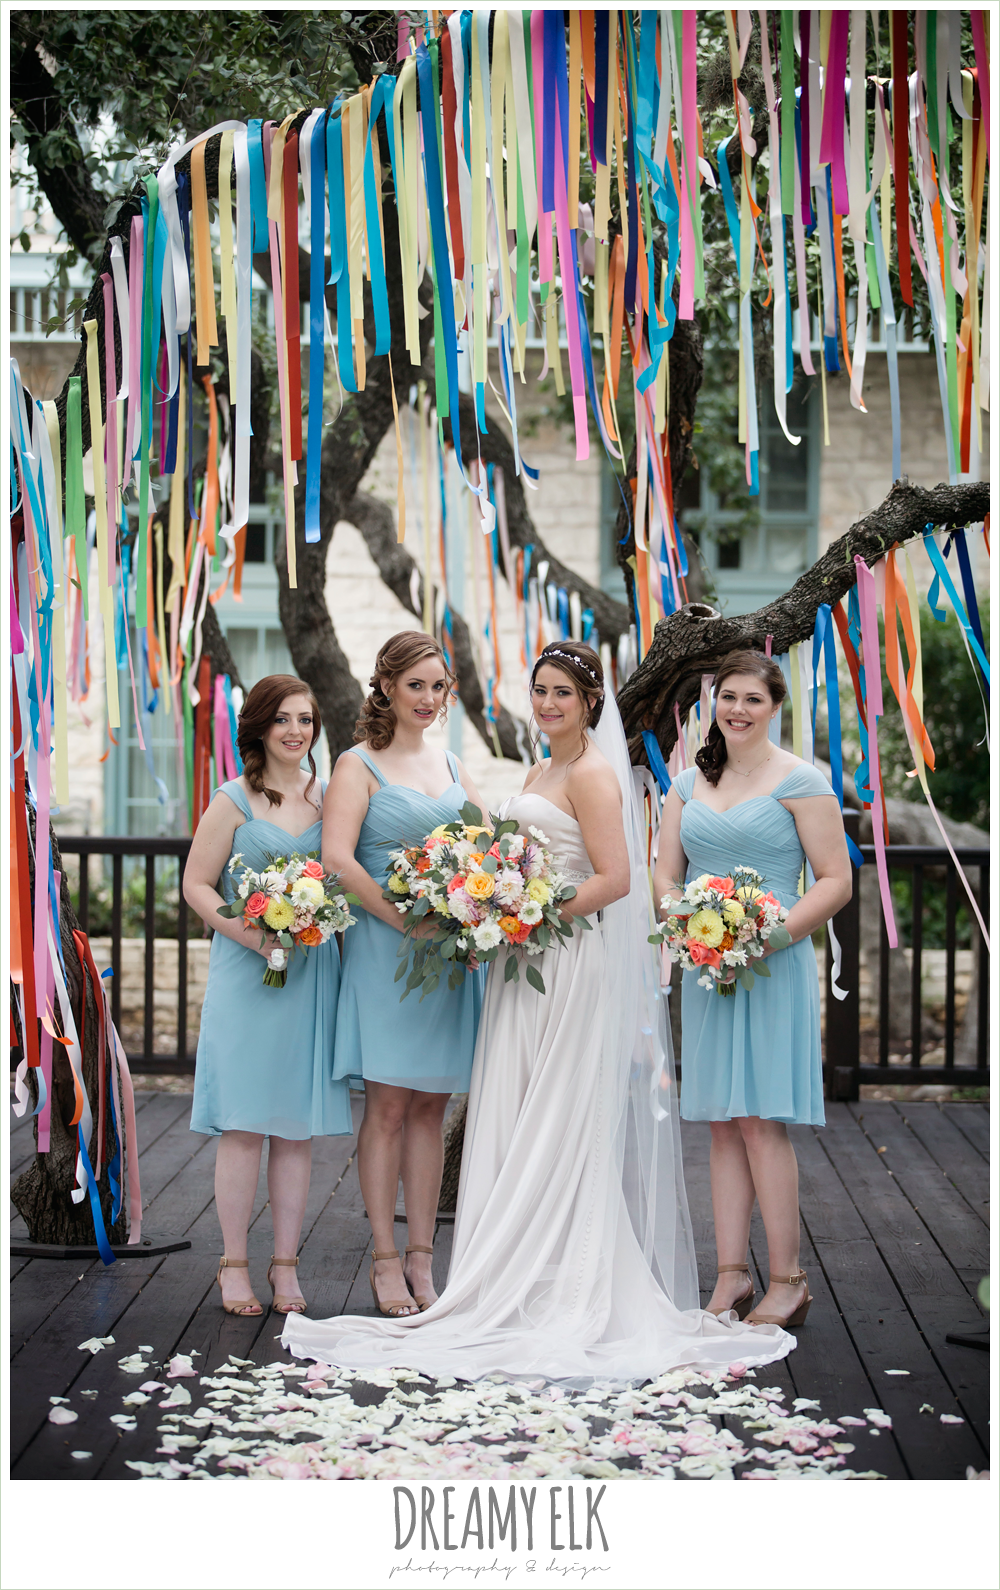 colorful streamers in trees ceremony decorations, Plans n' Petals wedding bouquet, bill levkoff bridesmaid dress in glacier blue, sweetheart strapless justin alexander wedding dress in sand color, colorful outdoor sunday morning brunch wedding, hyatt hill country club, san antonio wedding photo {dreamy elk photography and design}